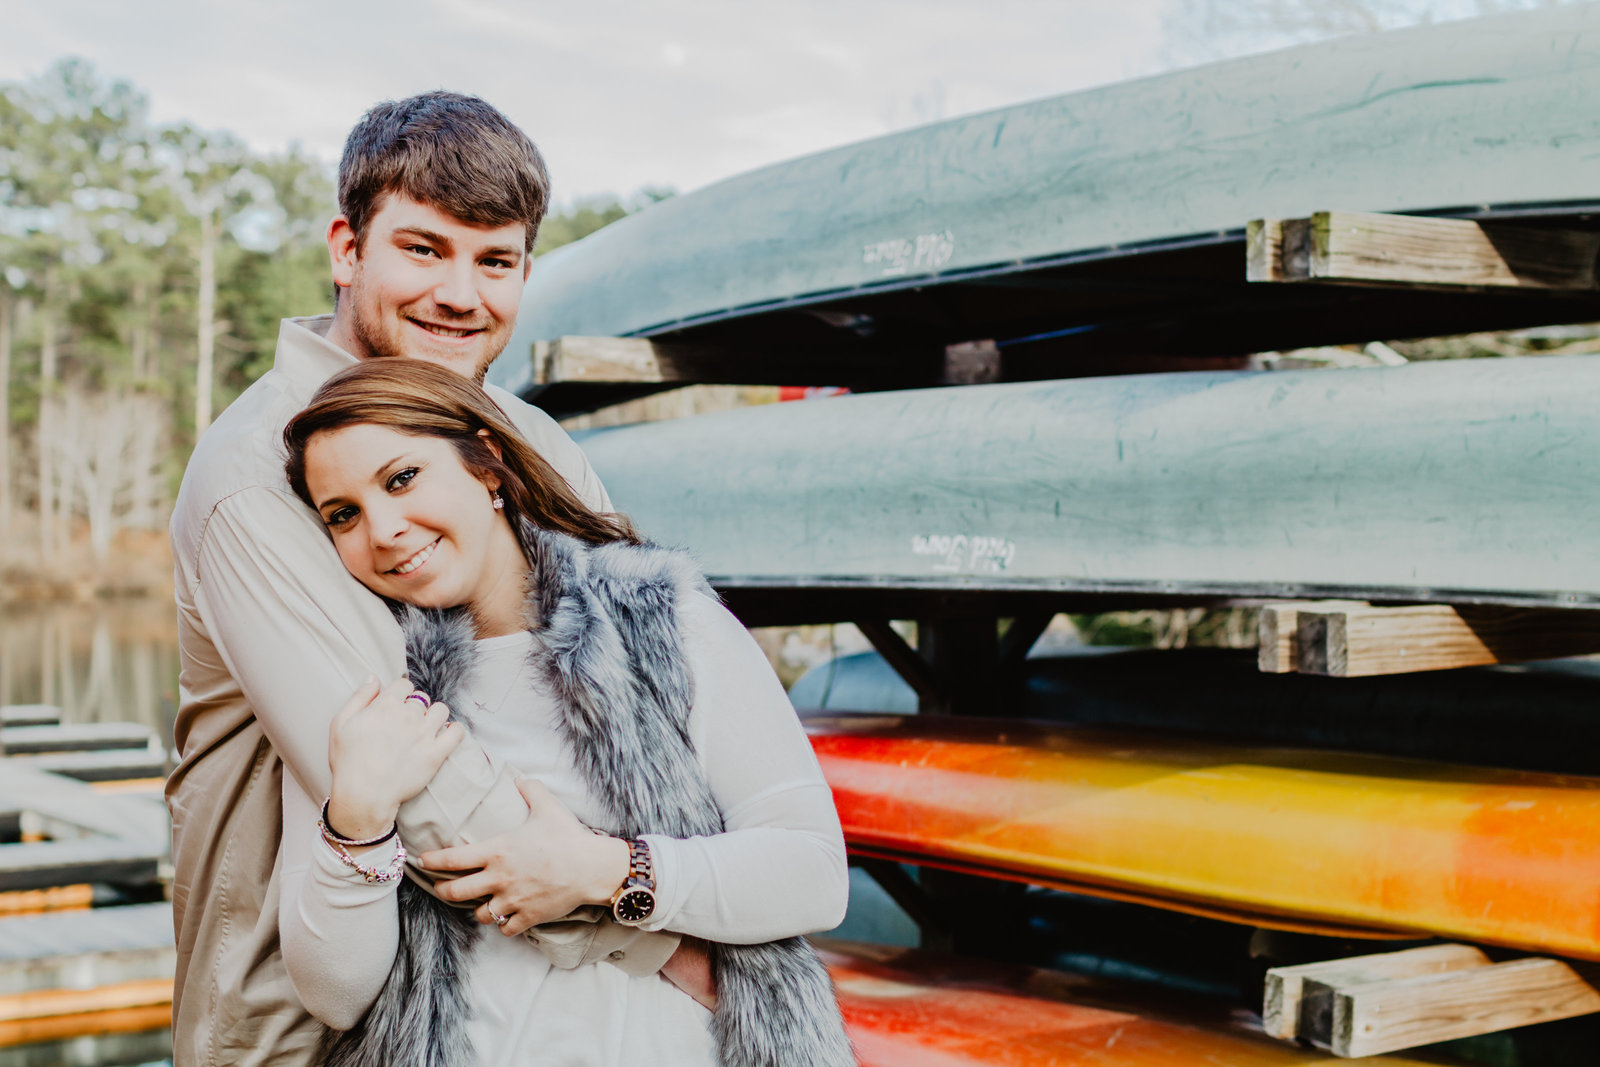 Standing by the canoes at Oak Mountain State Park, soon to be bride wraps her arms around her soon to be grooms arm.